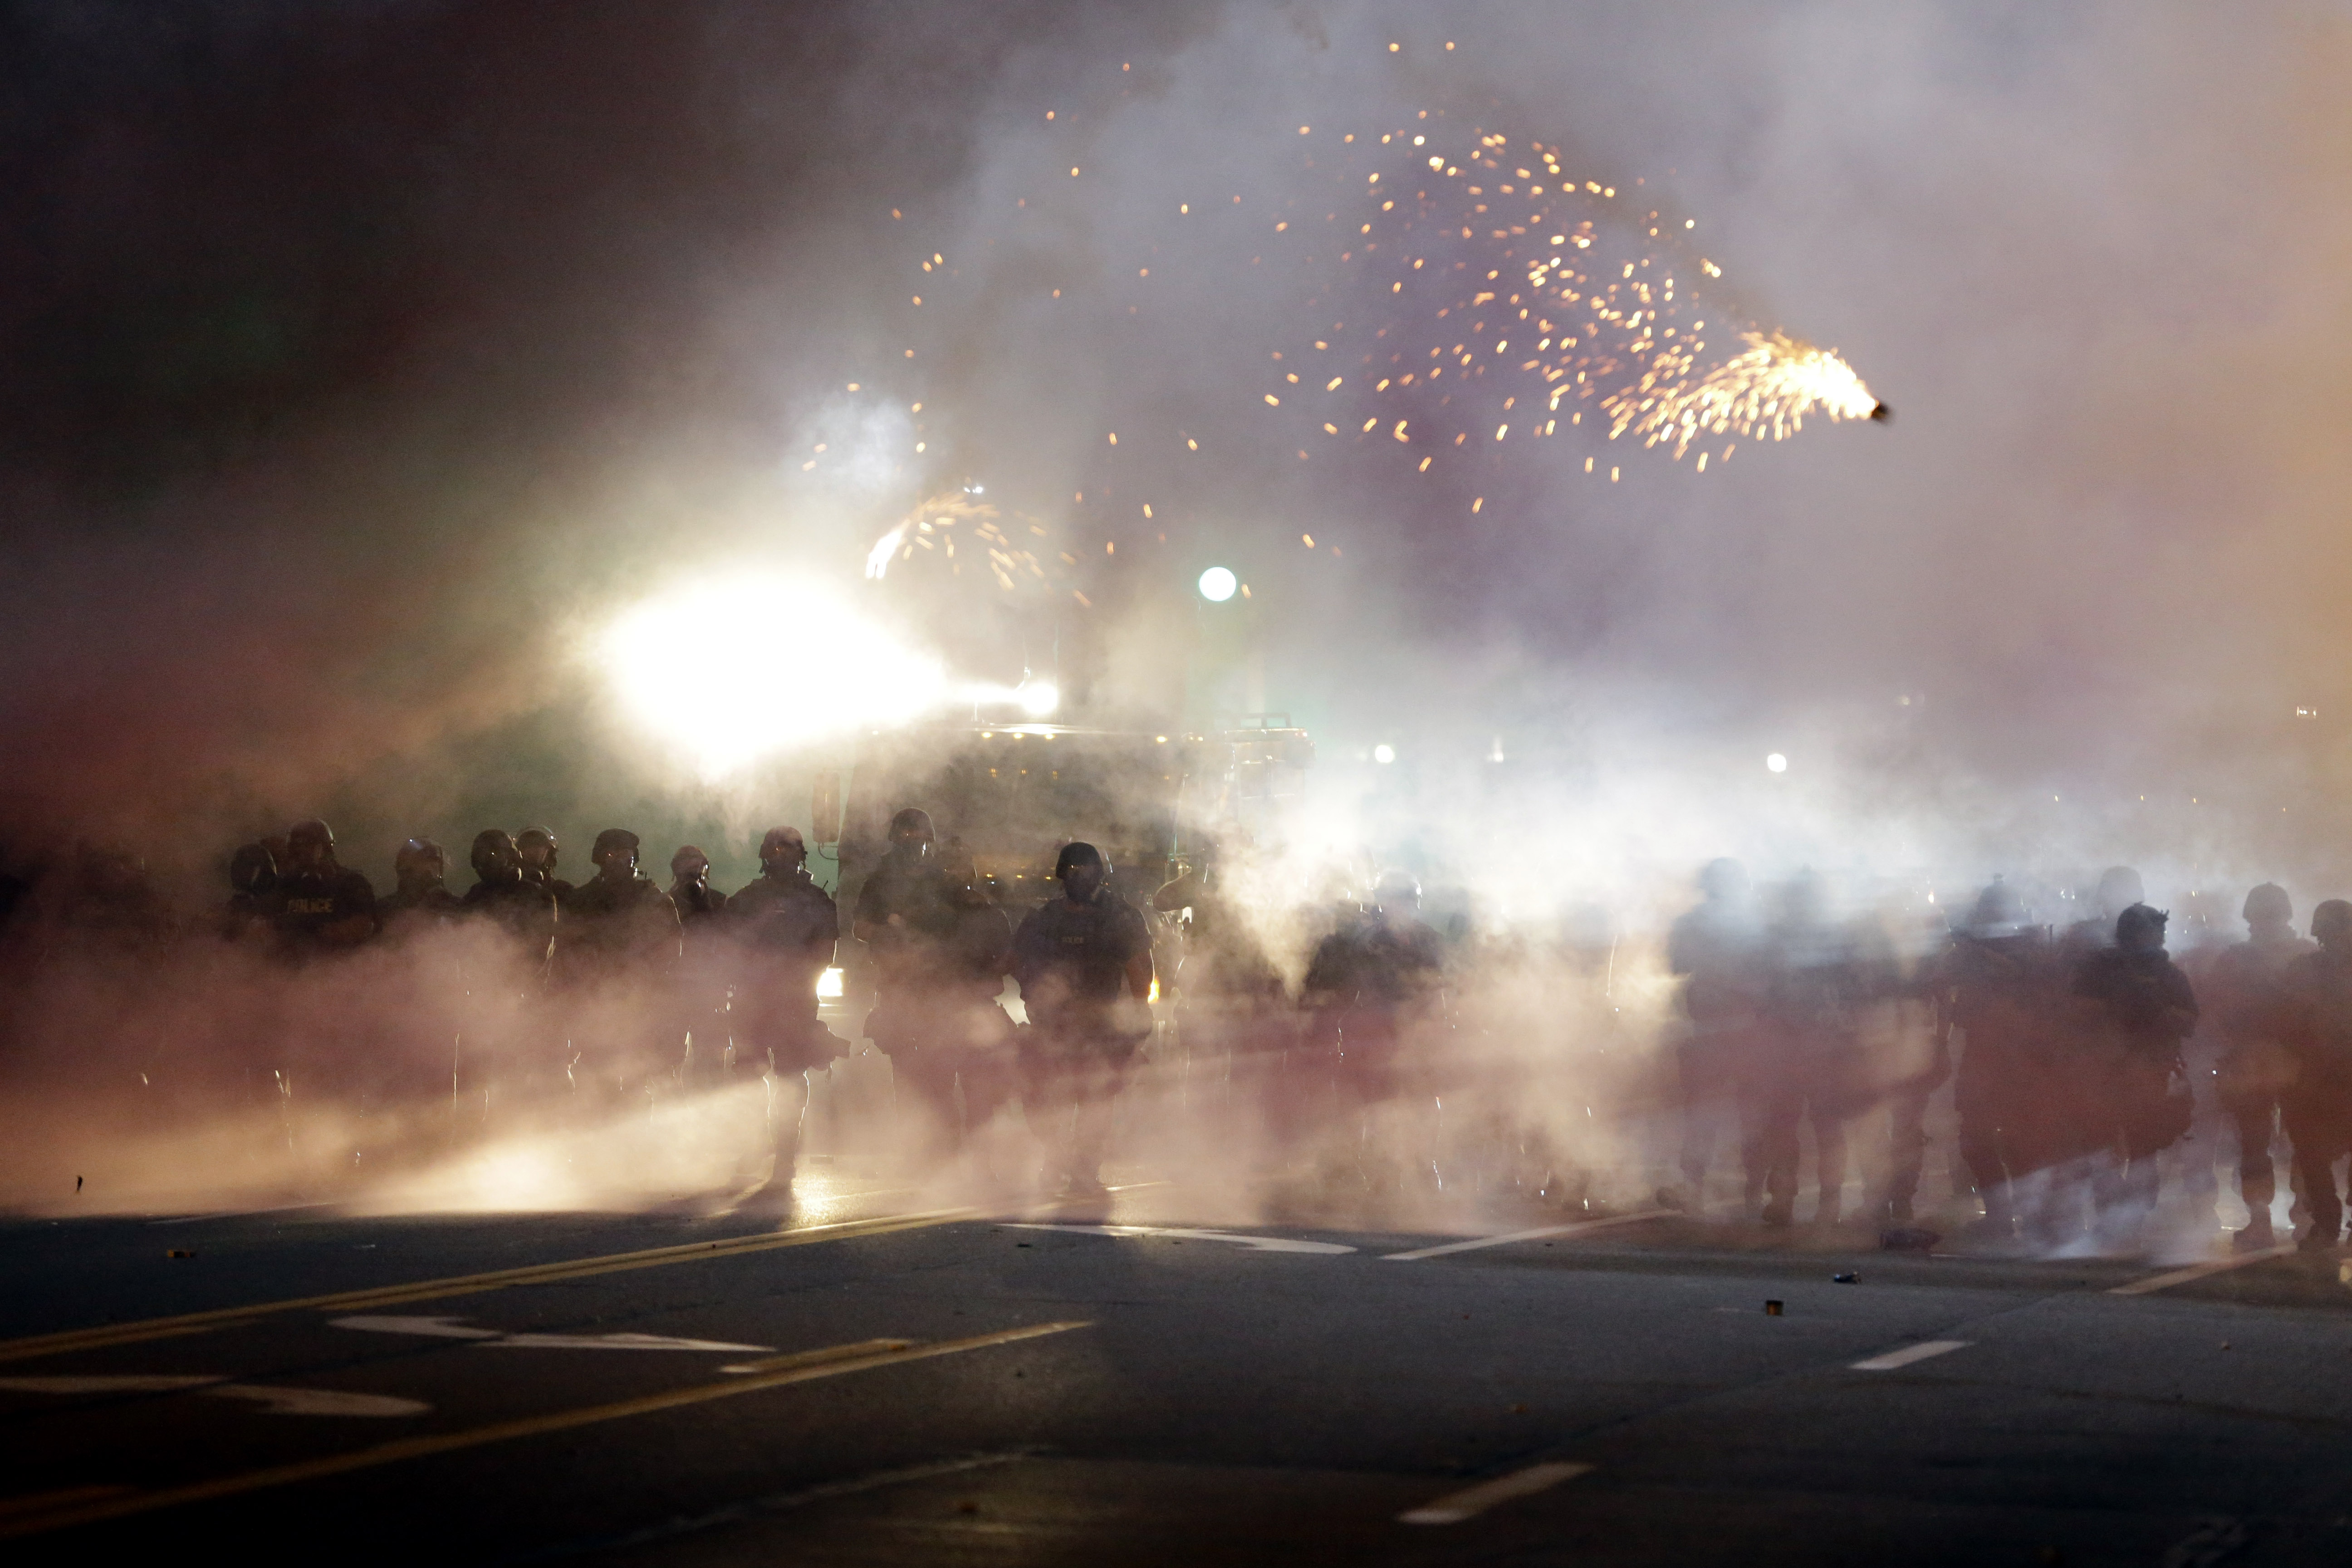 An explosive device deployed by police flies in the air as police and protesters clash in Ferguson, Mo., on Aug. 13, 2014